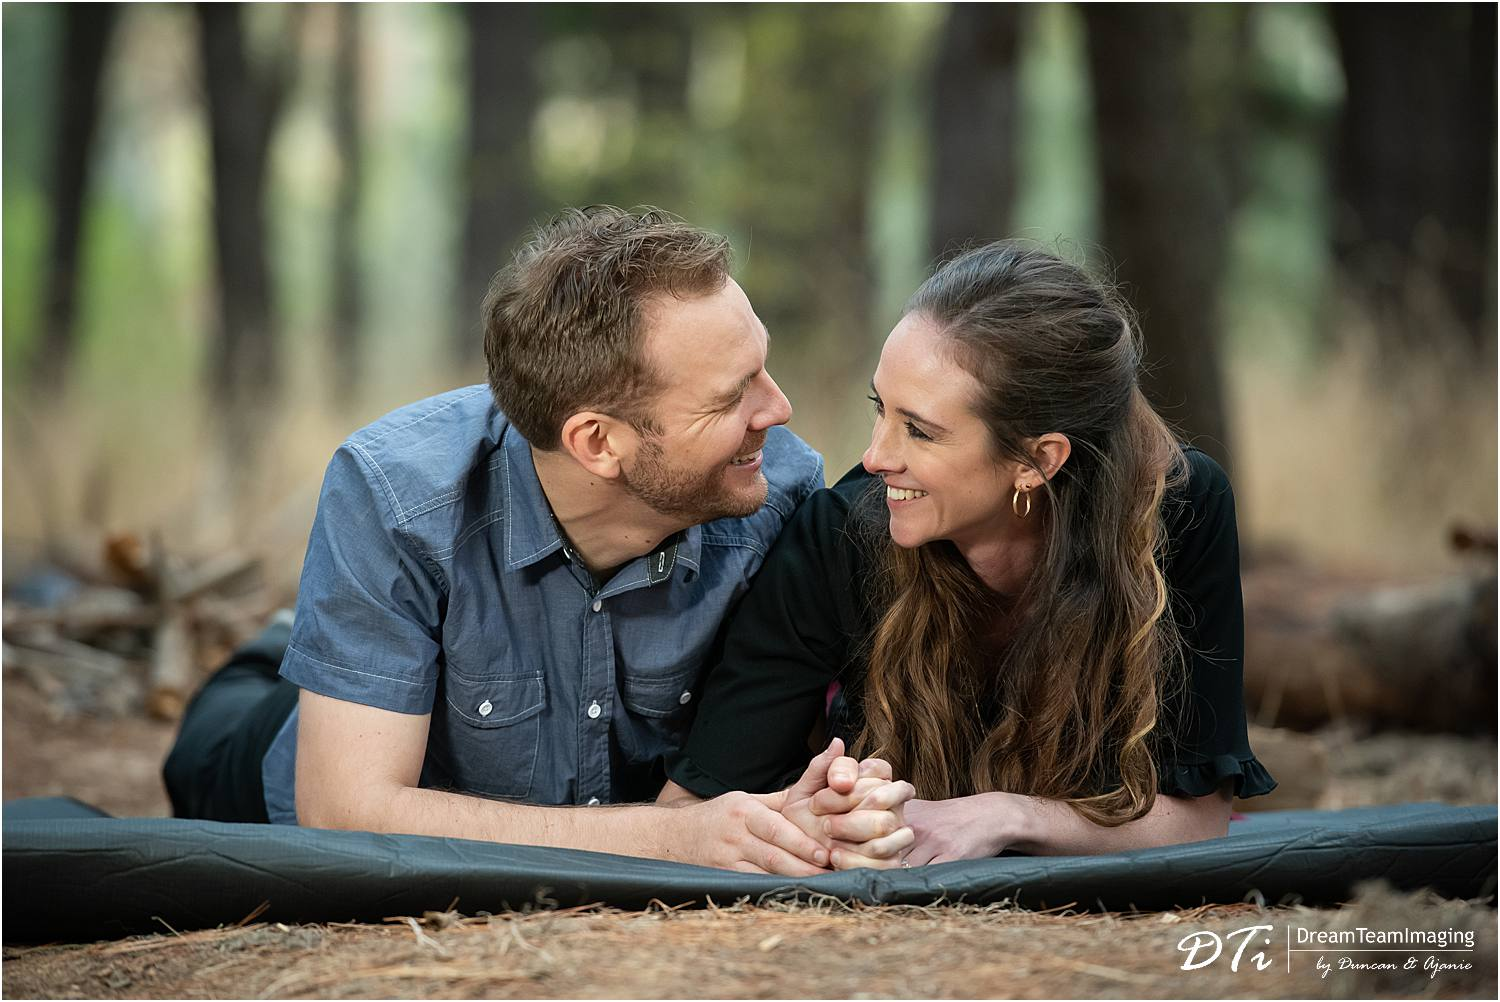 Blackwood Forest pre wedding adelaide, dreamteamimaging